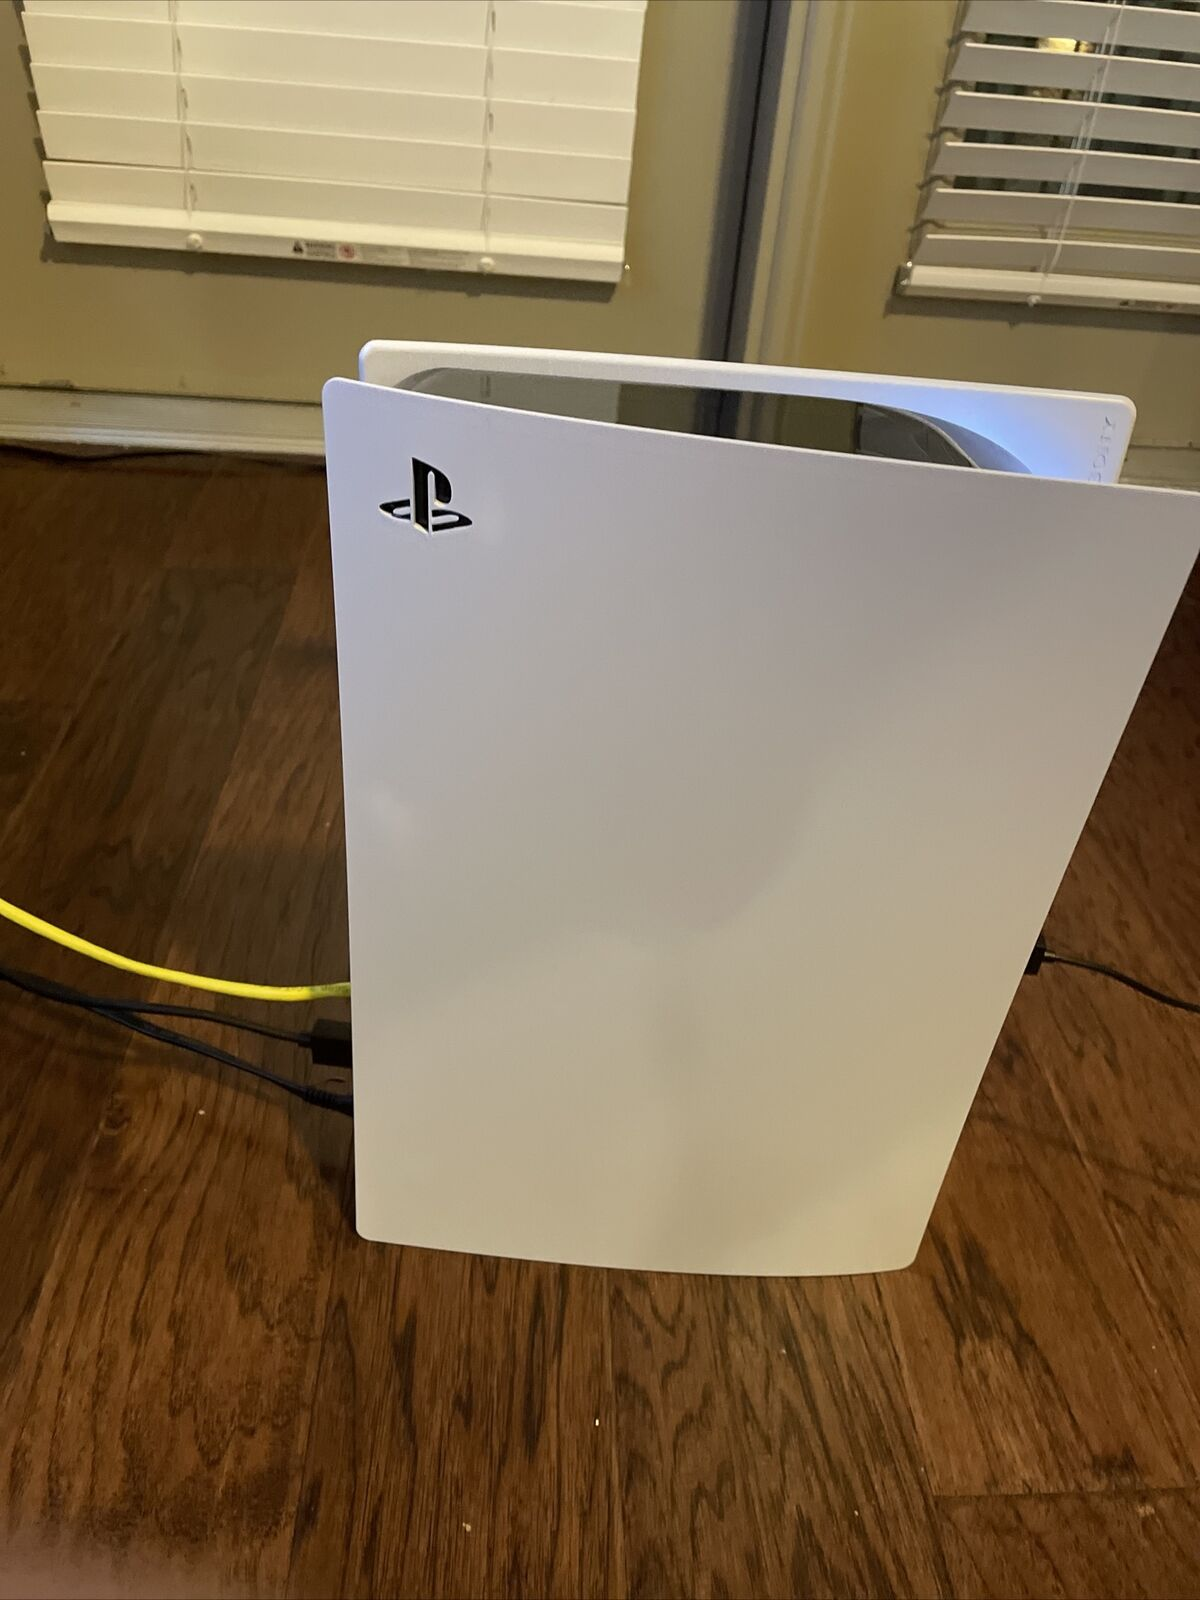 Selling Sony Playstation 5 Whats-App : +14076302850